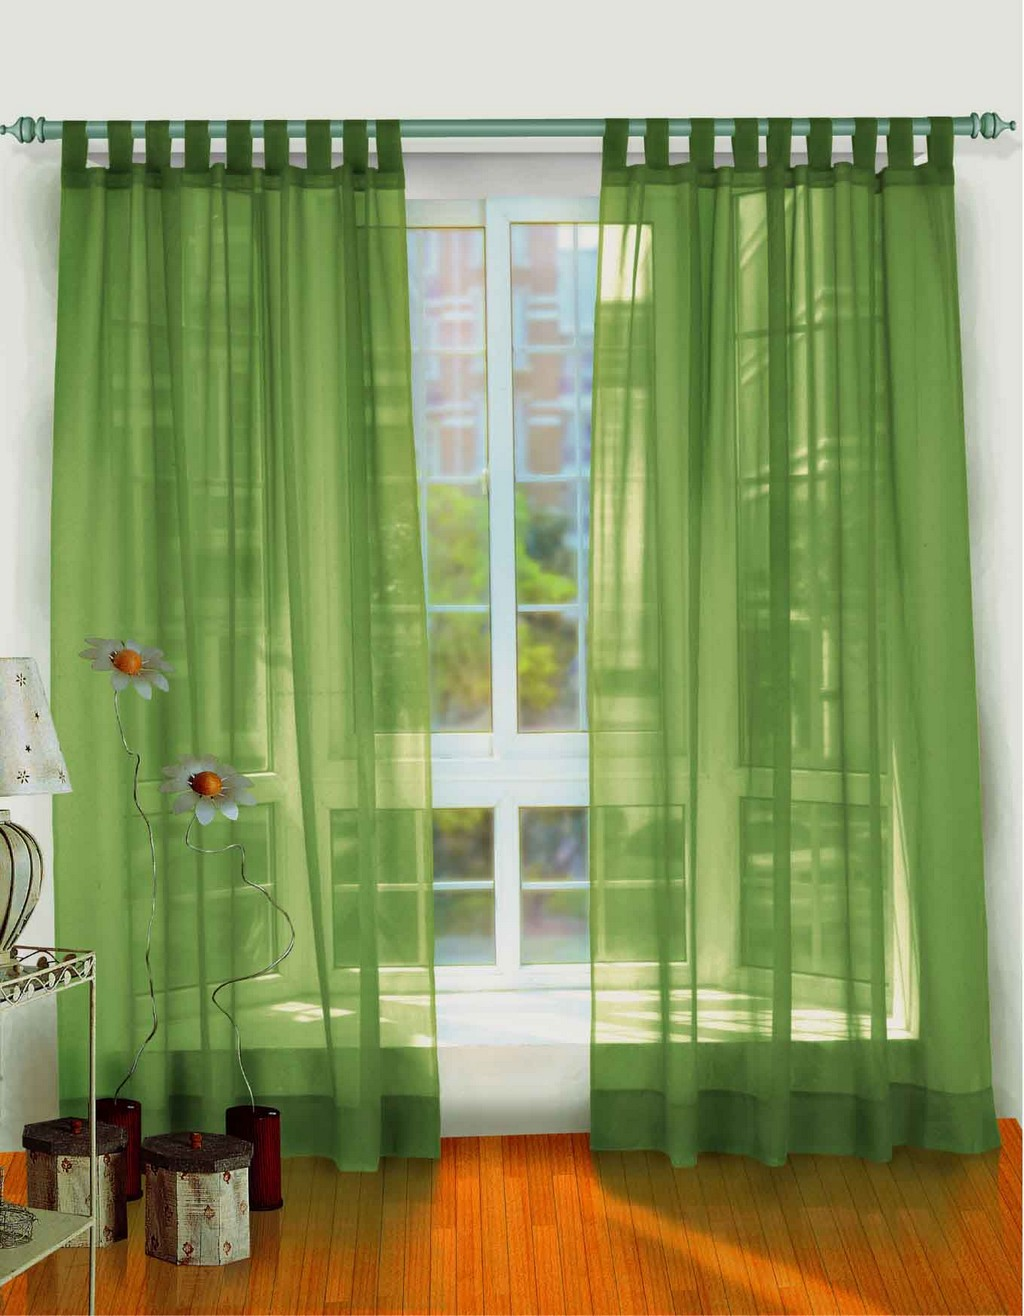 discount curtains window treatments, how to make swag curtains, moose shower curtain, blackout curtain